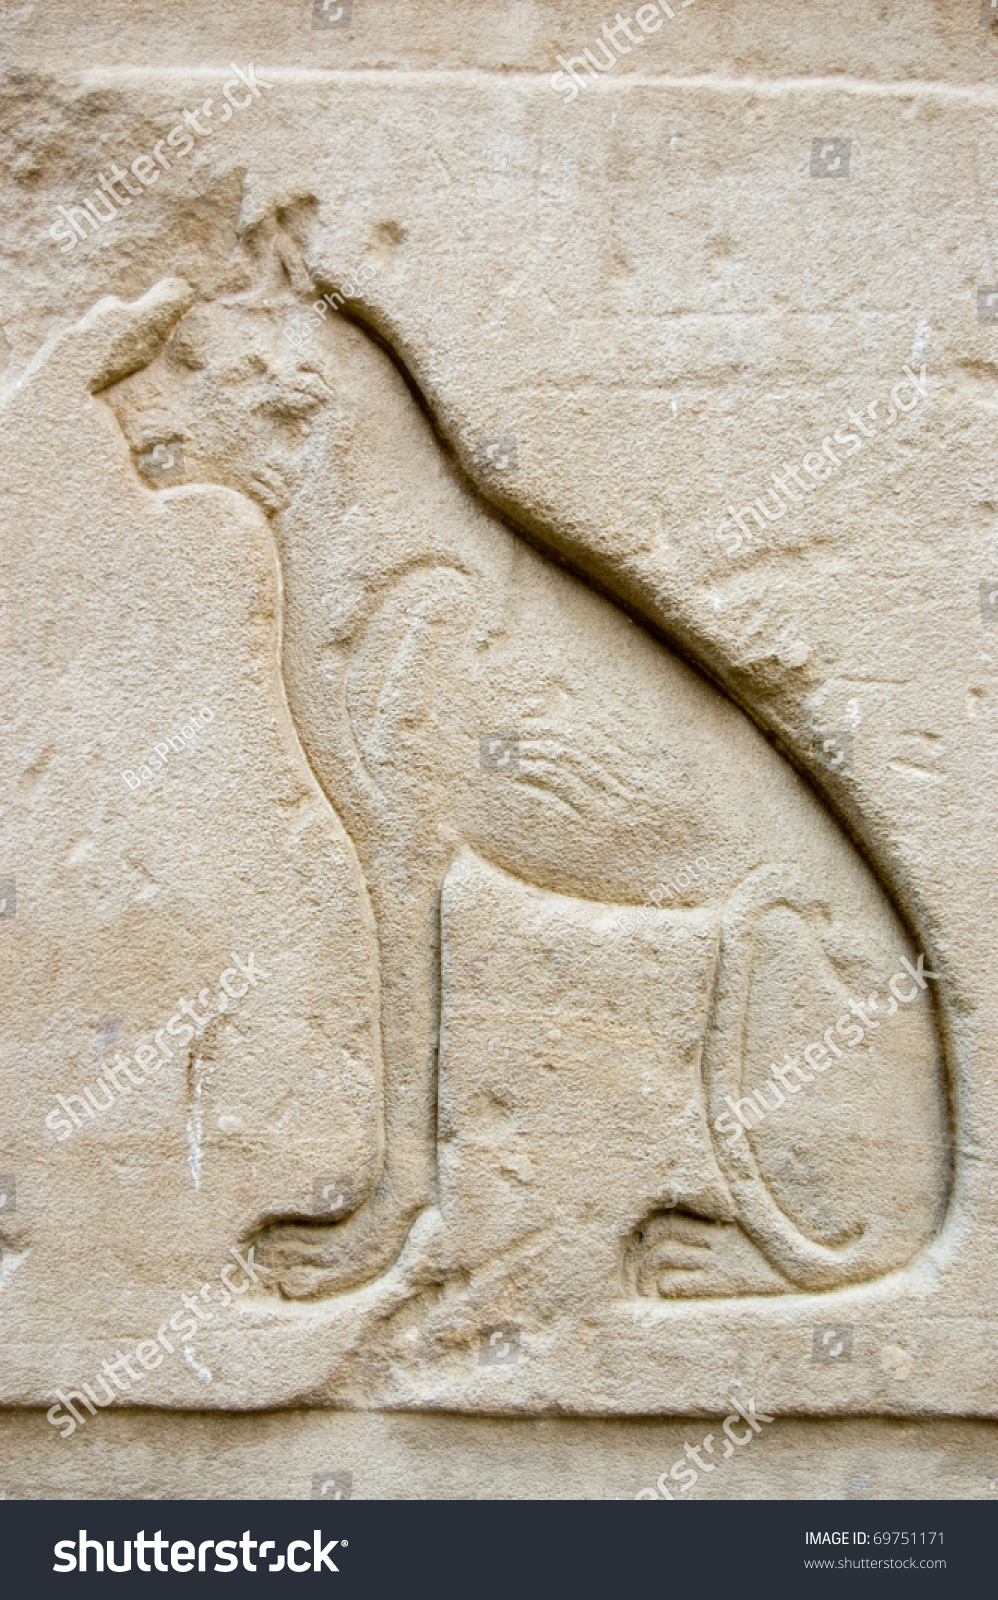 Ancient egyptian carving of the cat sometimes known as